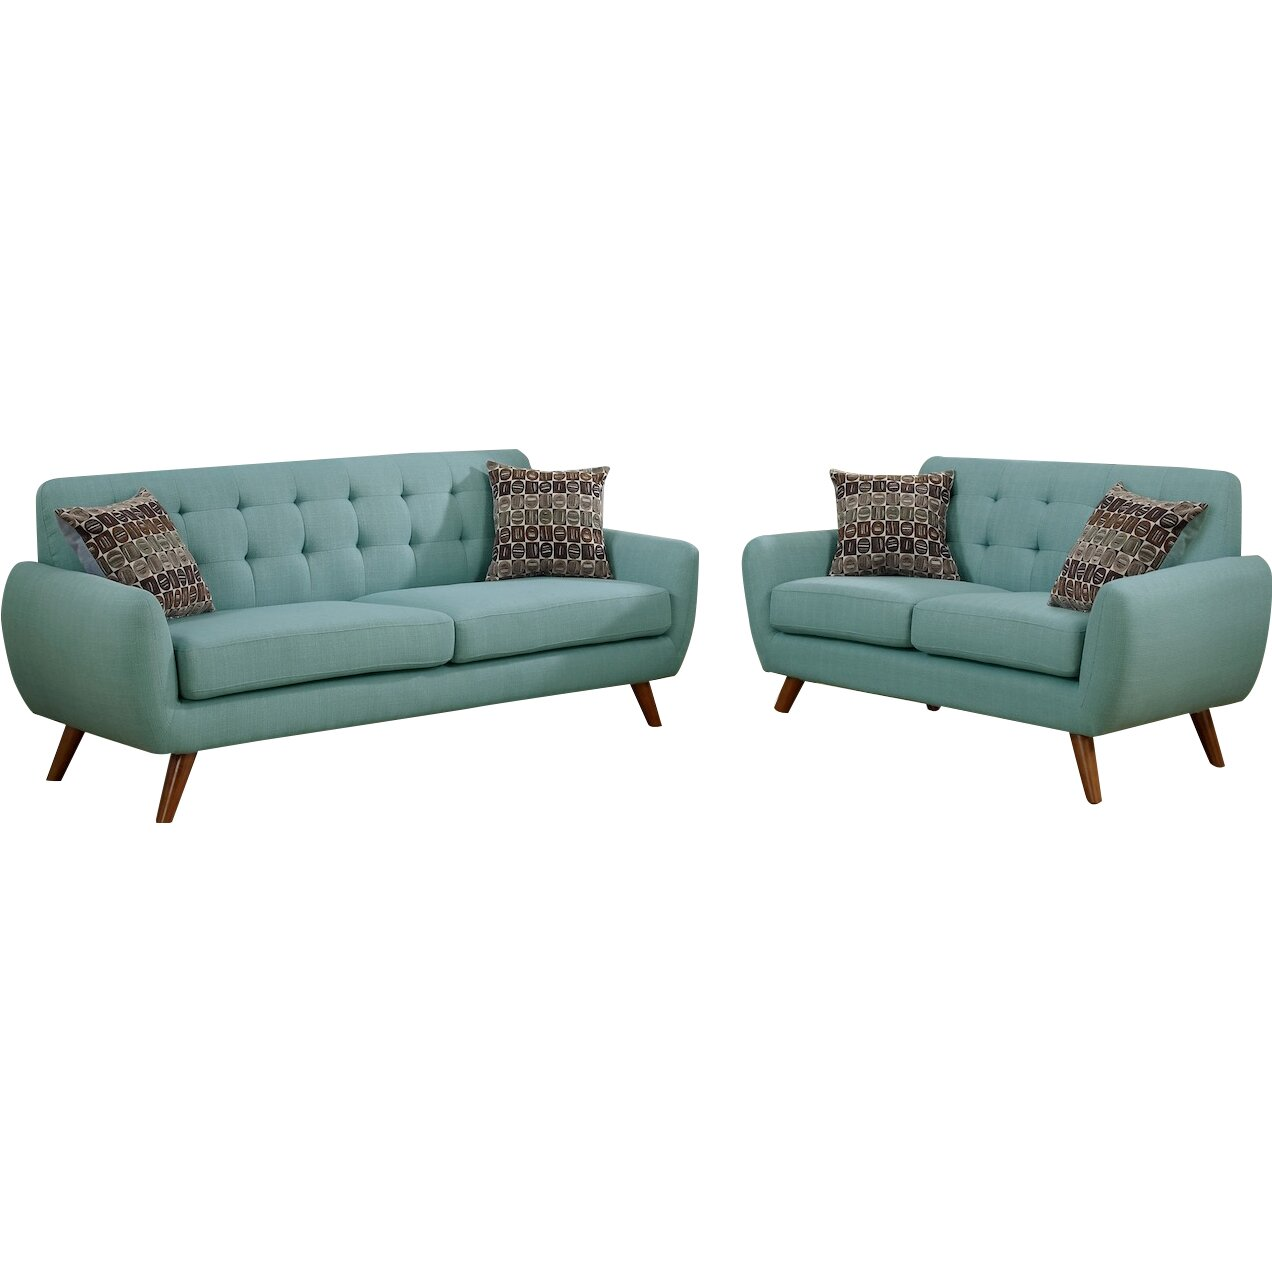 Infini furnishings modern retro sofa and loveseat reviews wayfair Retro loveseats